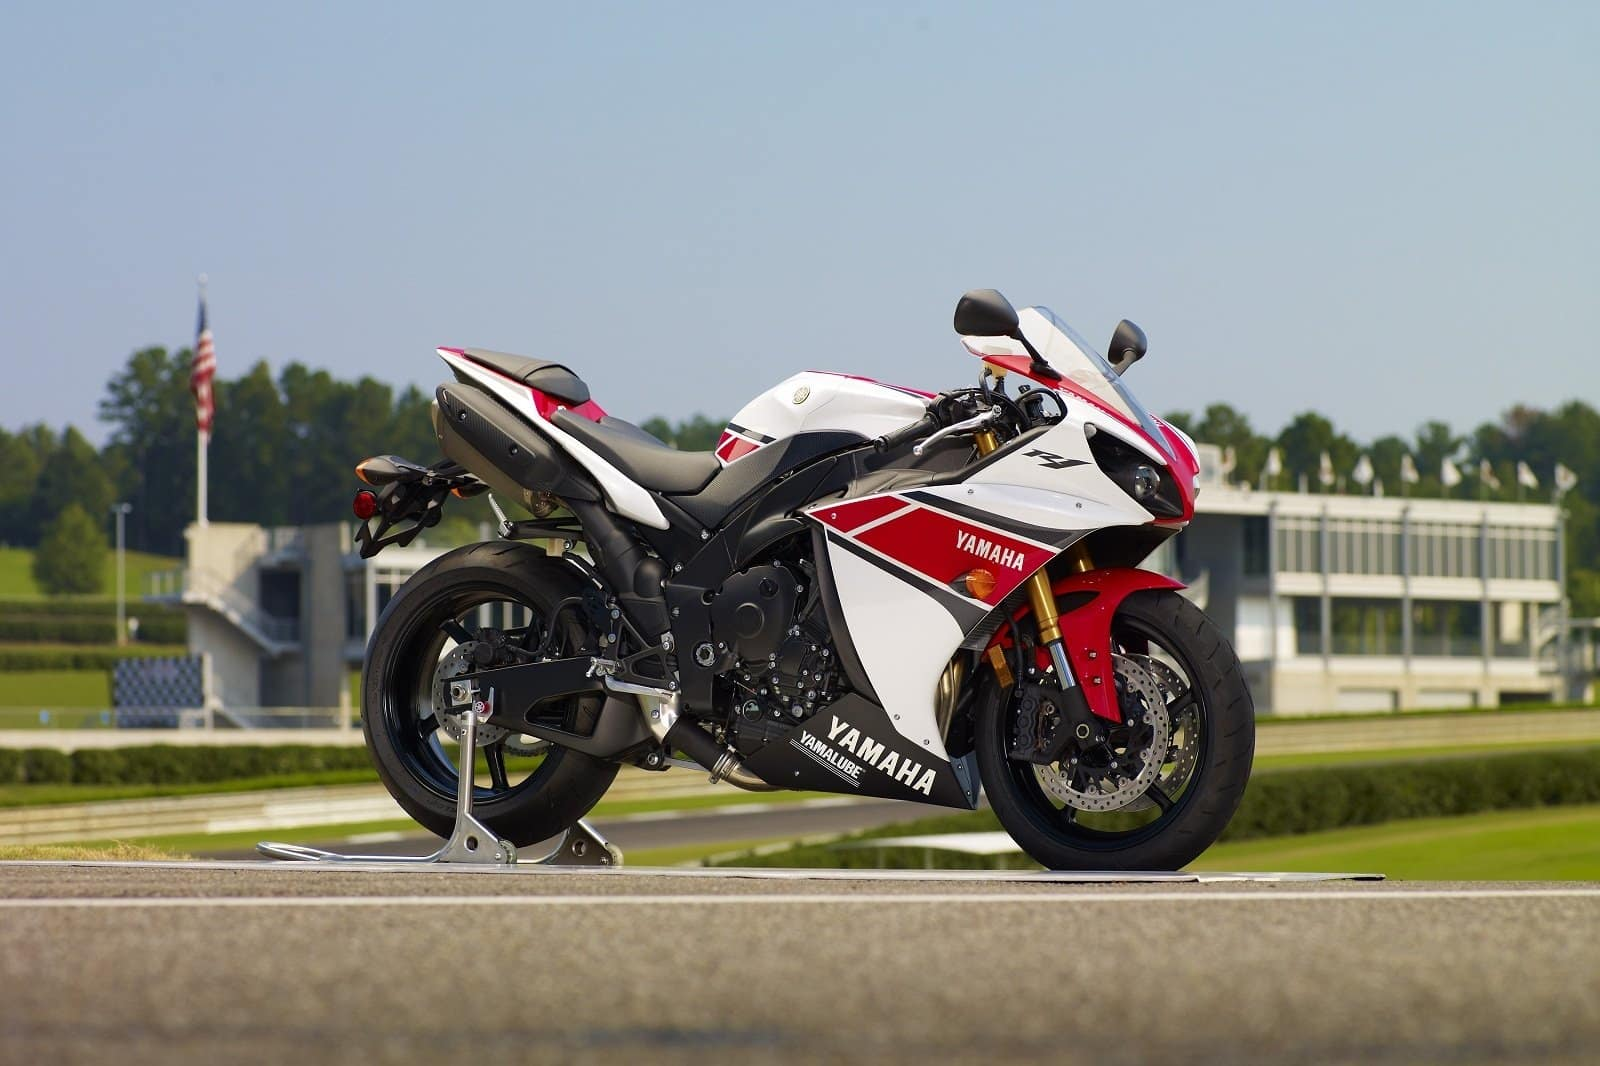 Yamaha R1 Buyer S Guide How To Buy A Used Yamaha R1